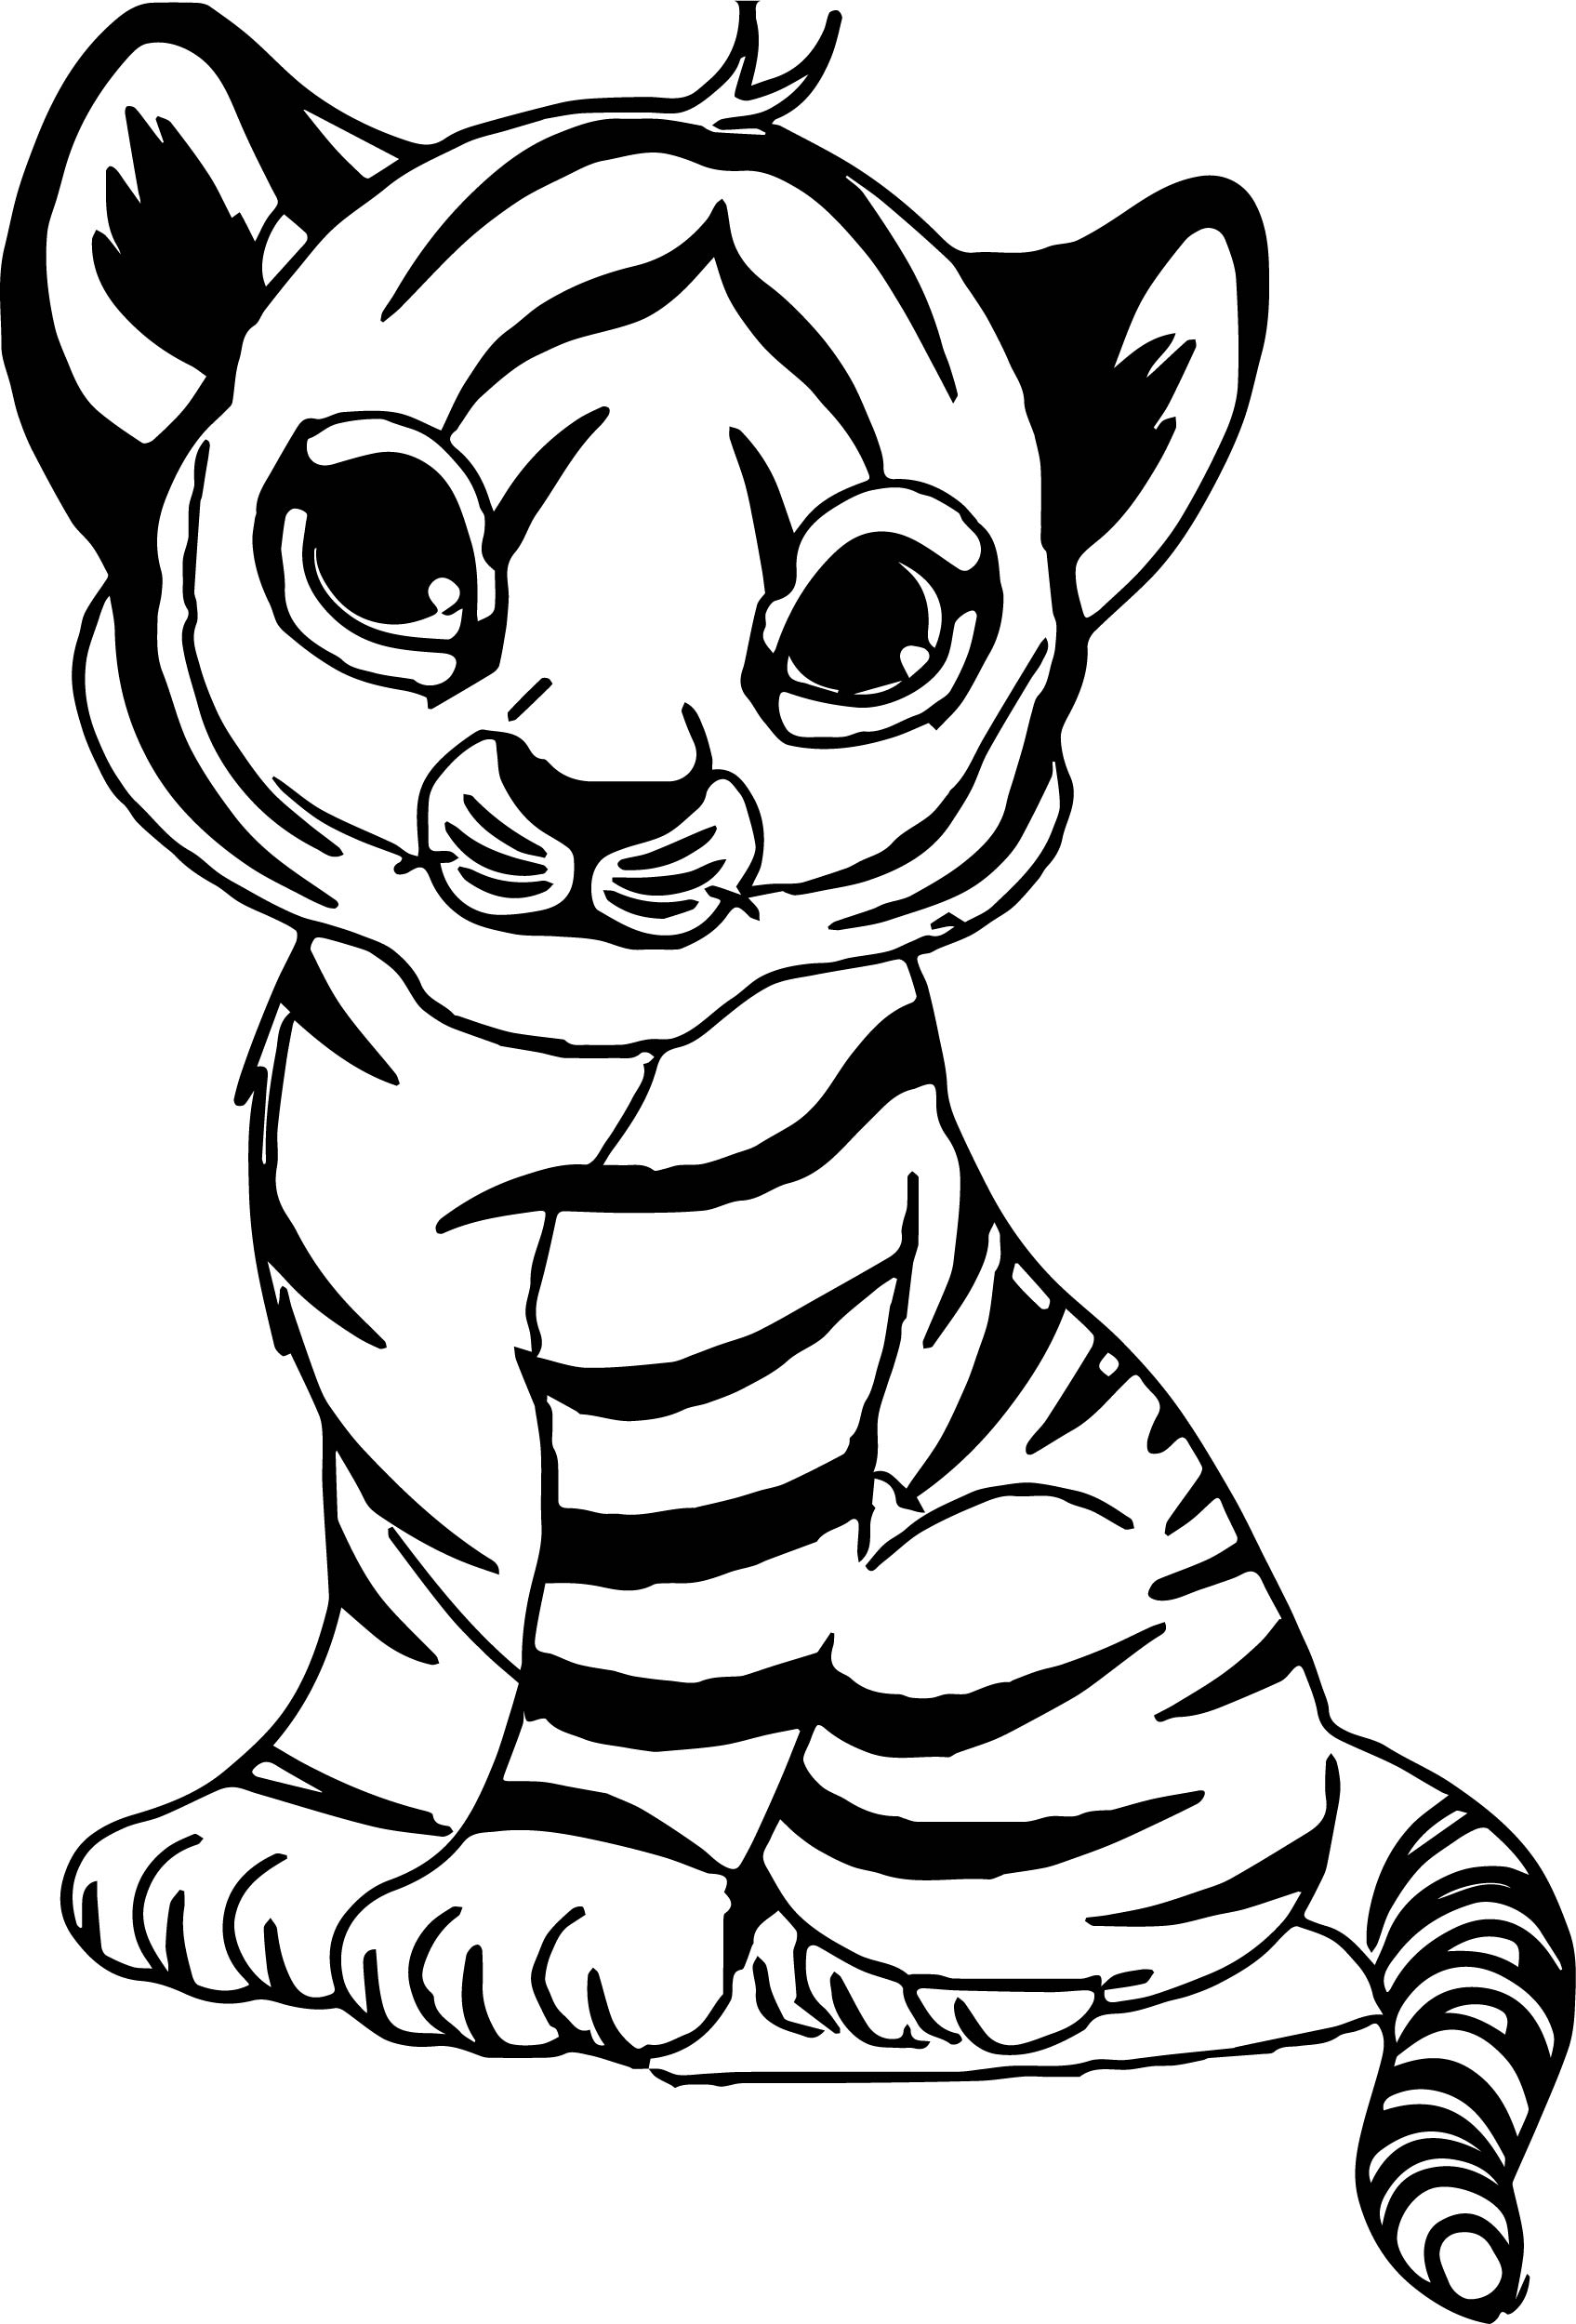 tiger images for colouring tigers to print for free tigers kids coloring pages images tiger for colouring